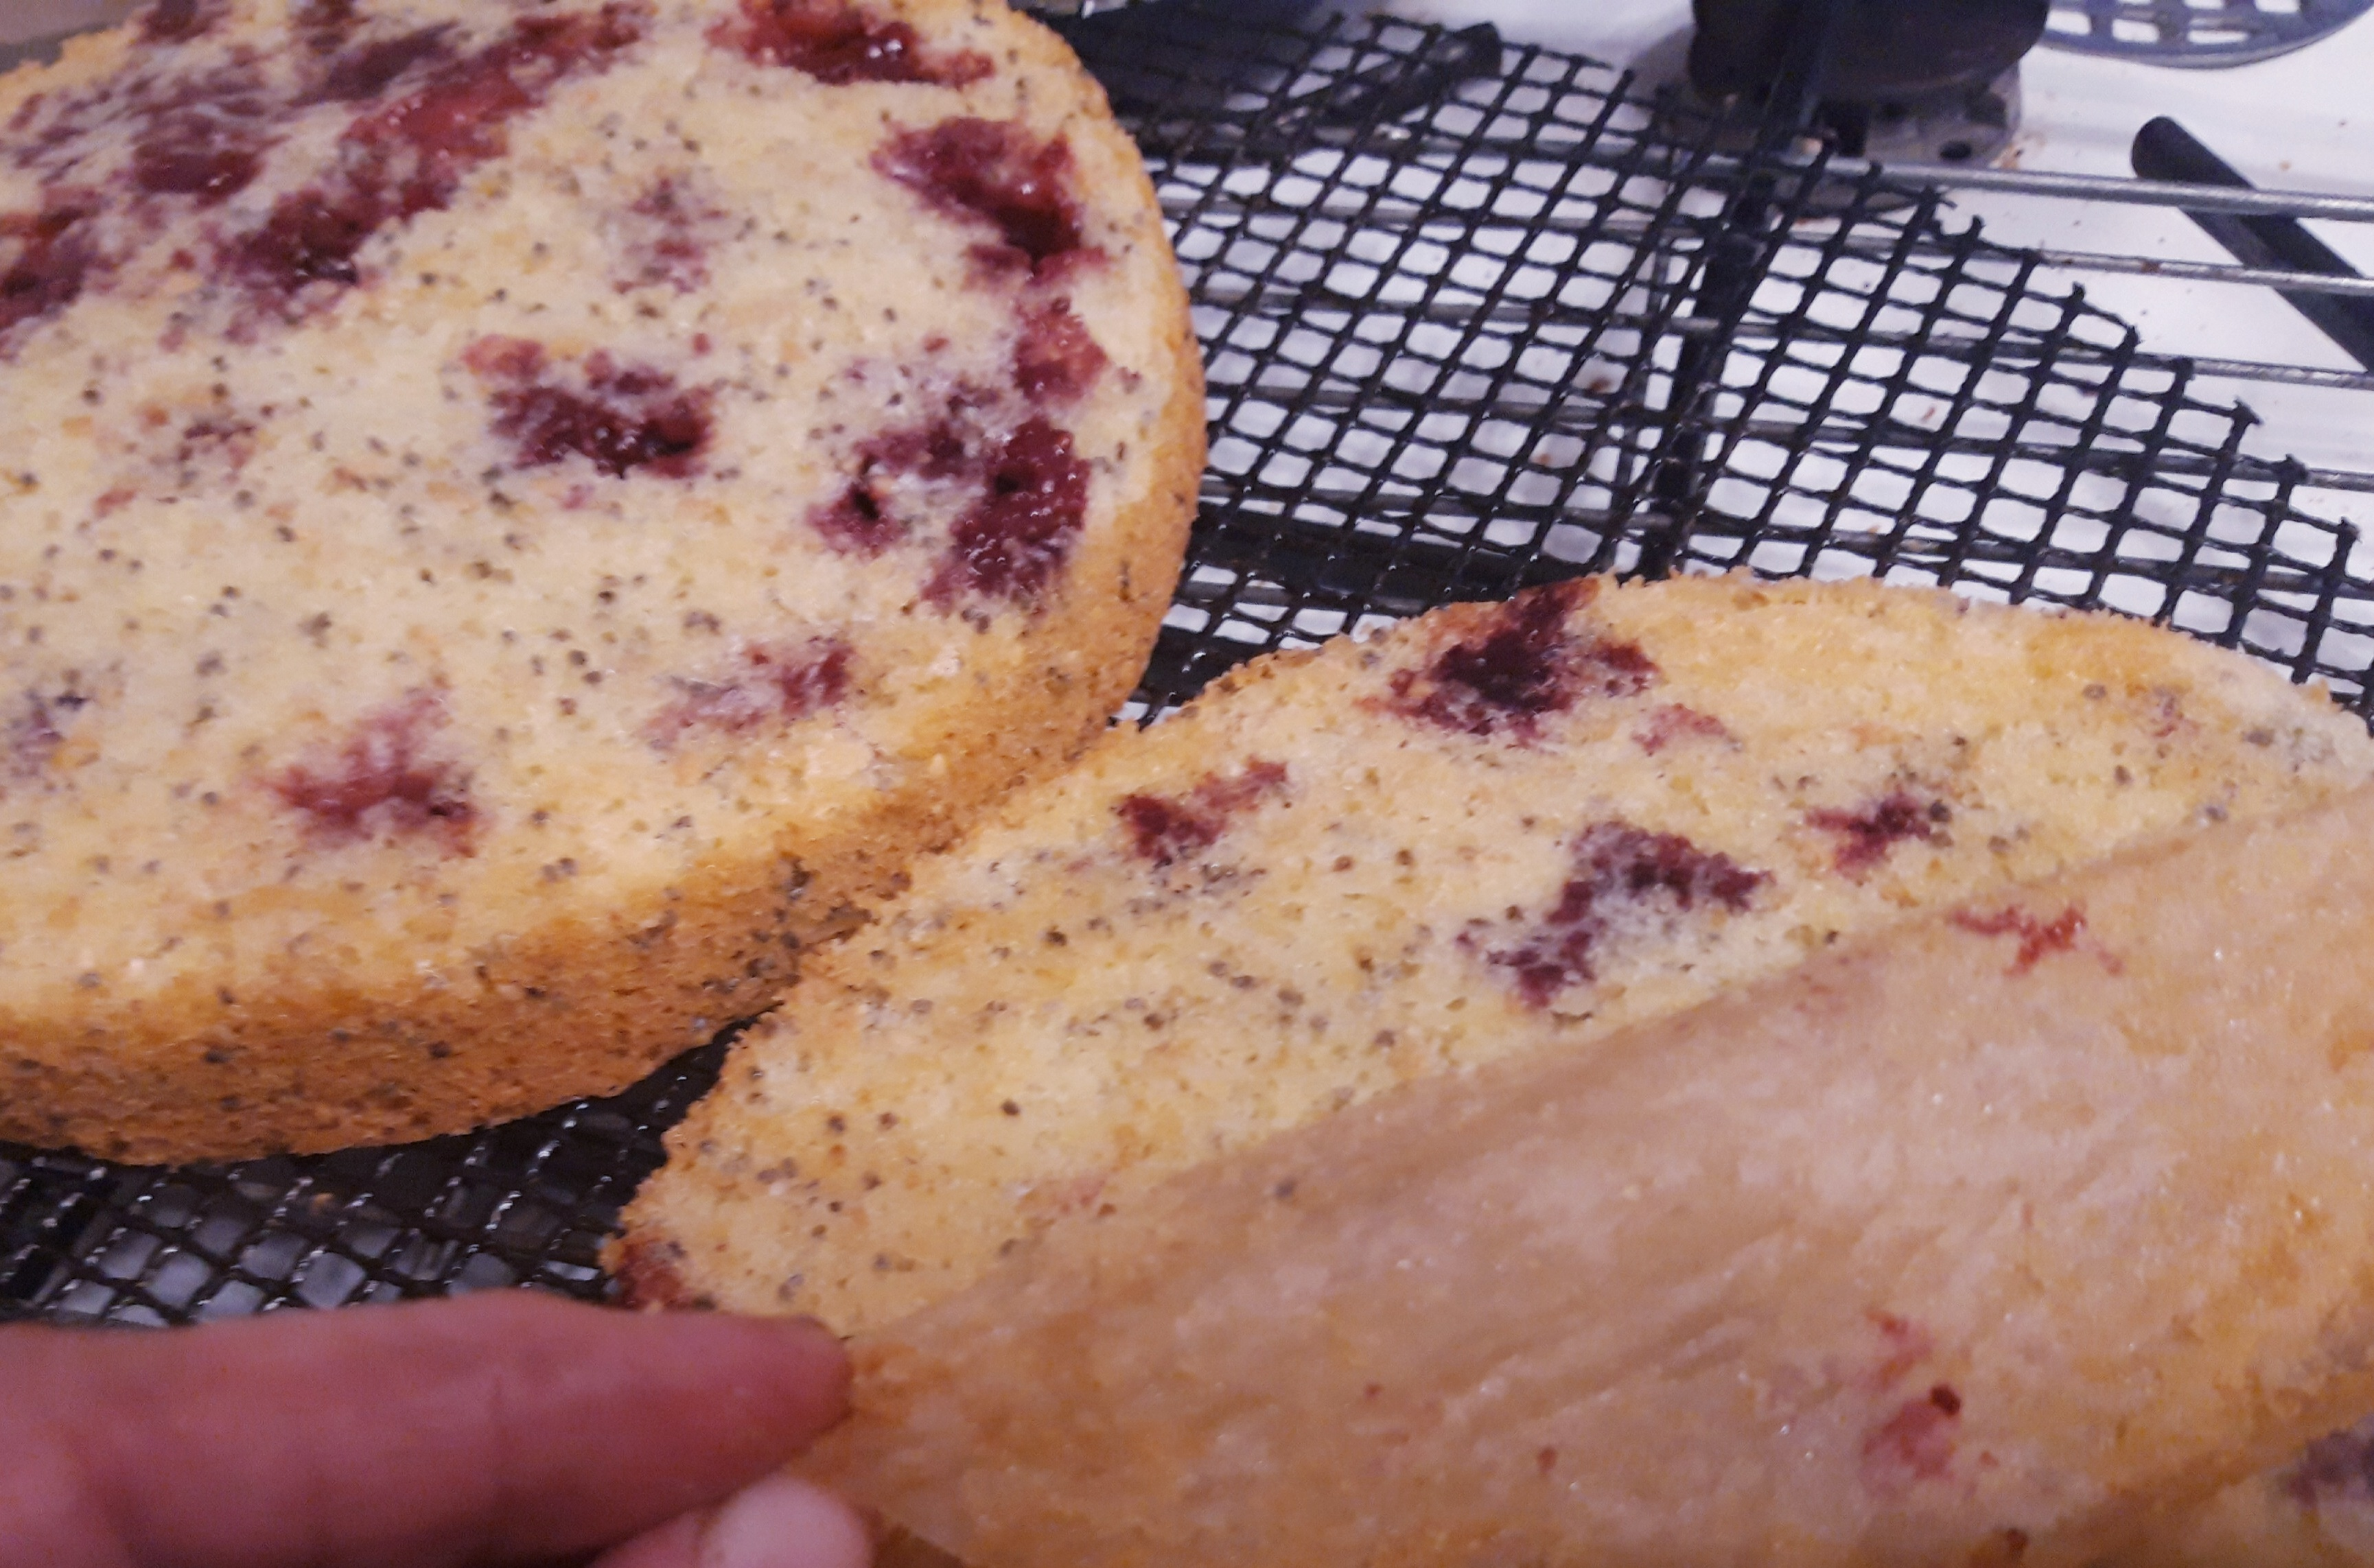 berry cakes straight out of the oven. peeling back the paper